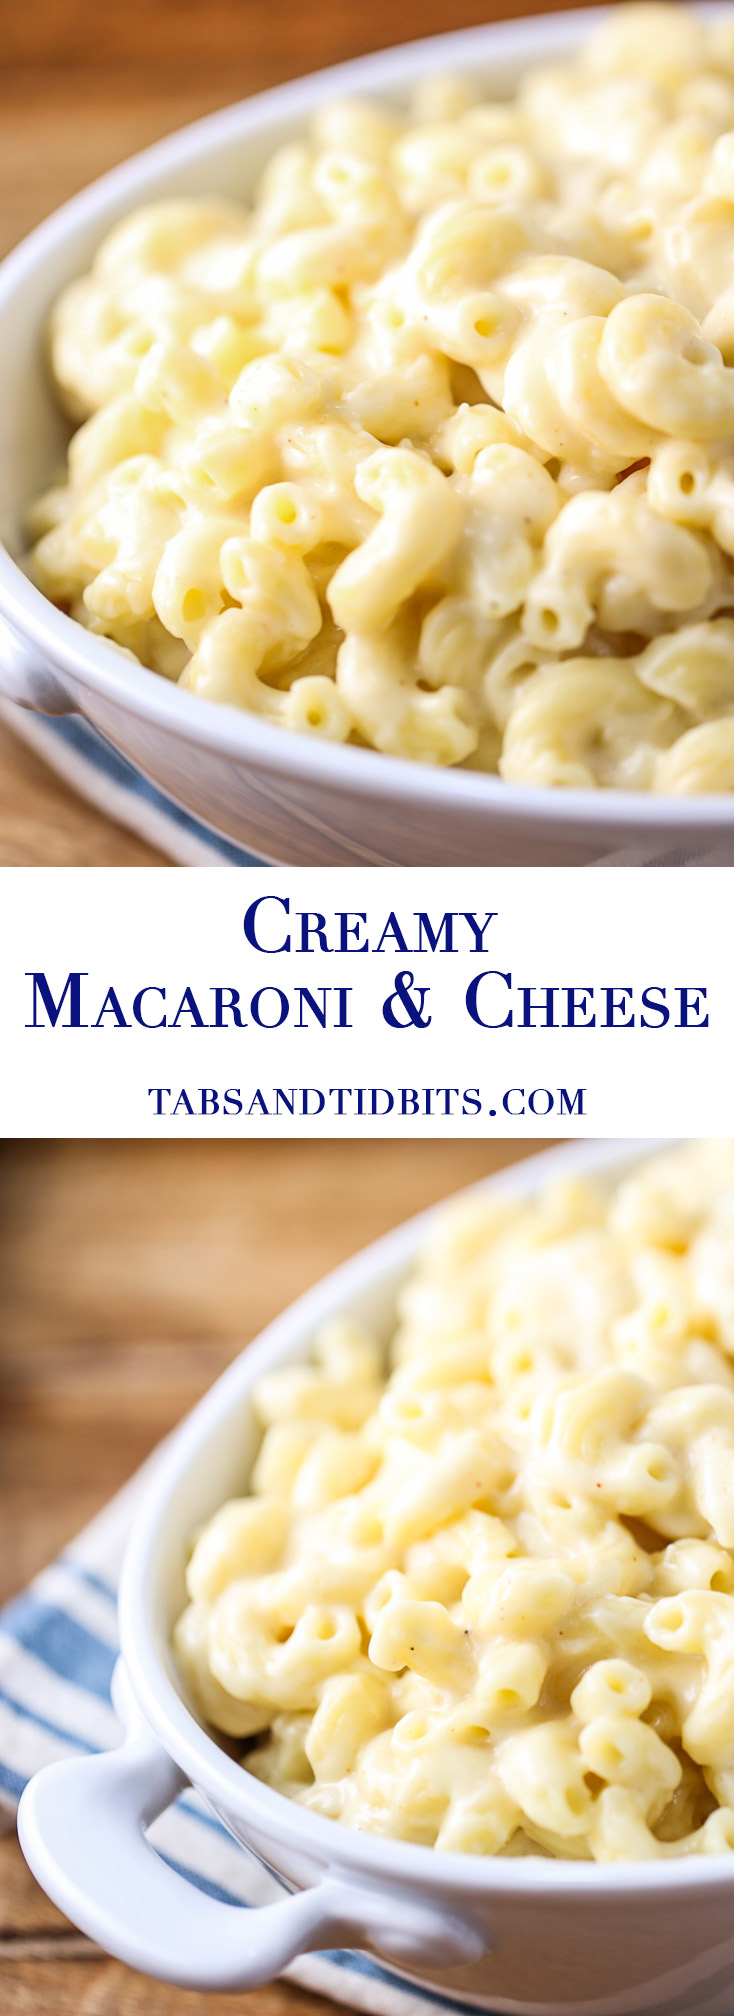 Creamy Macaroni & Cheese - Creamy and decadent macaroni and cheese cooked on the stovetop in one pot.